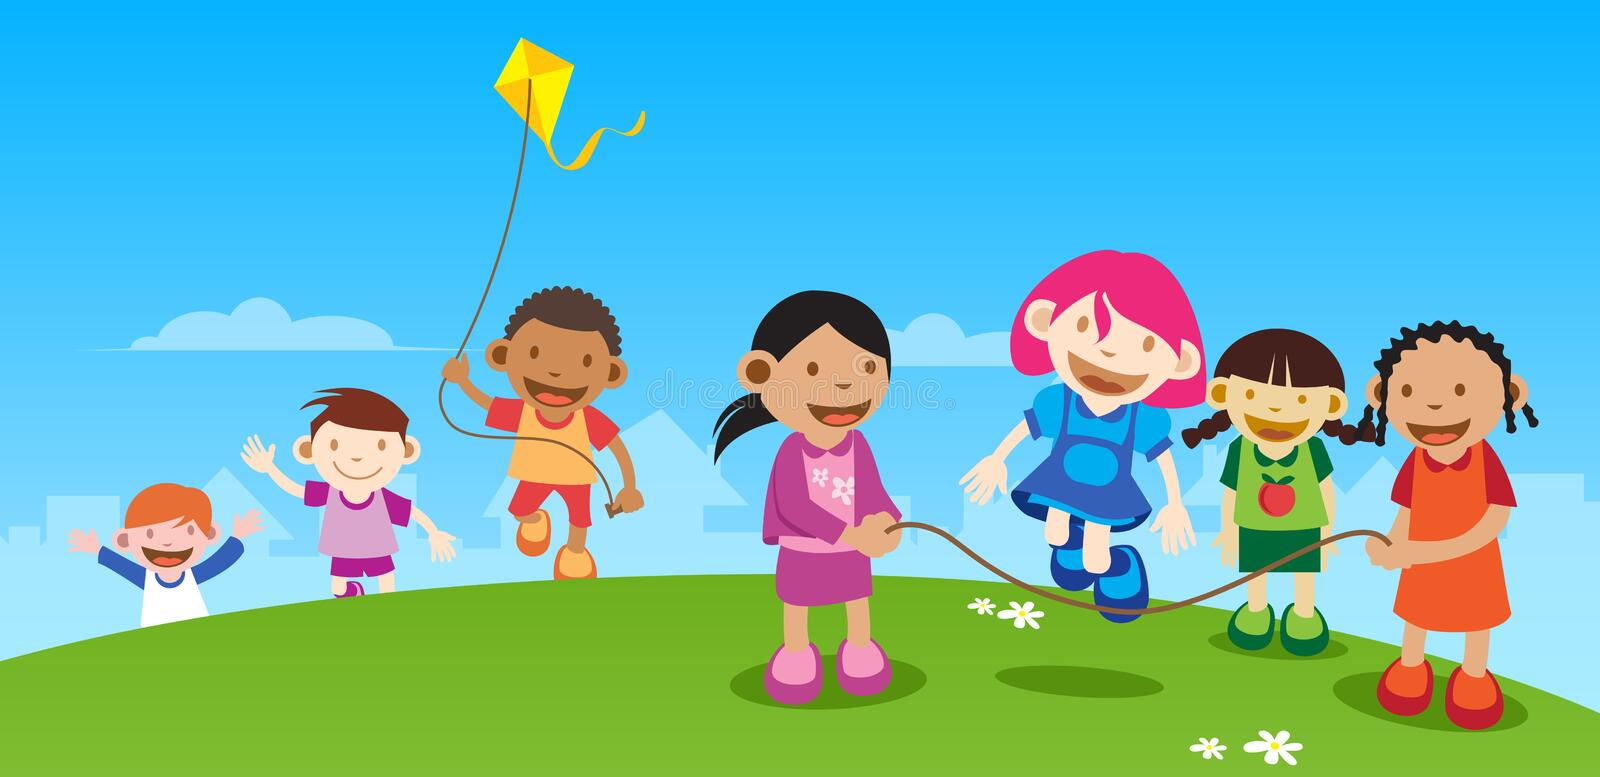 Kids Playing outside vector illustration